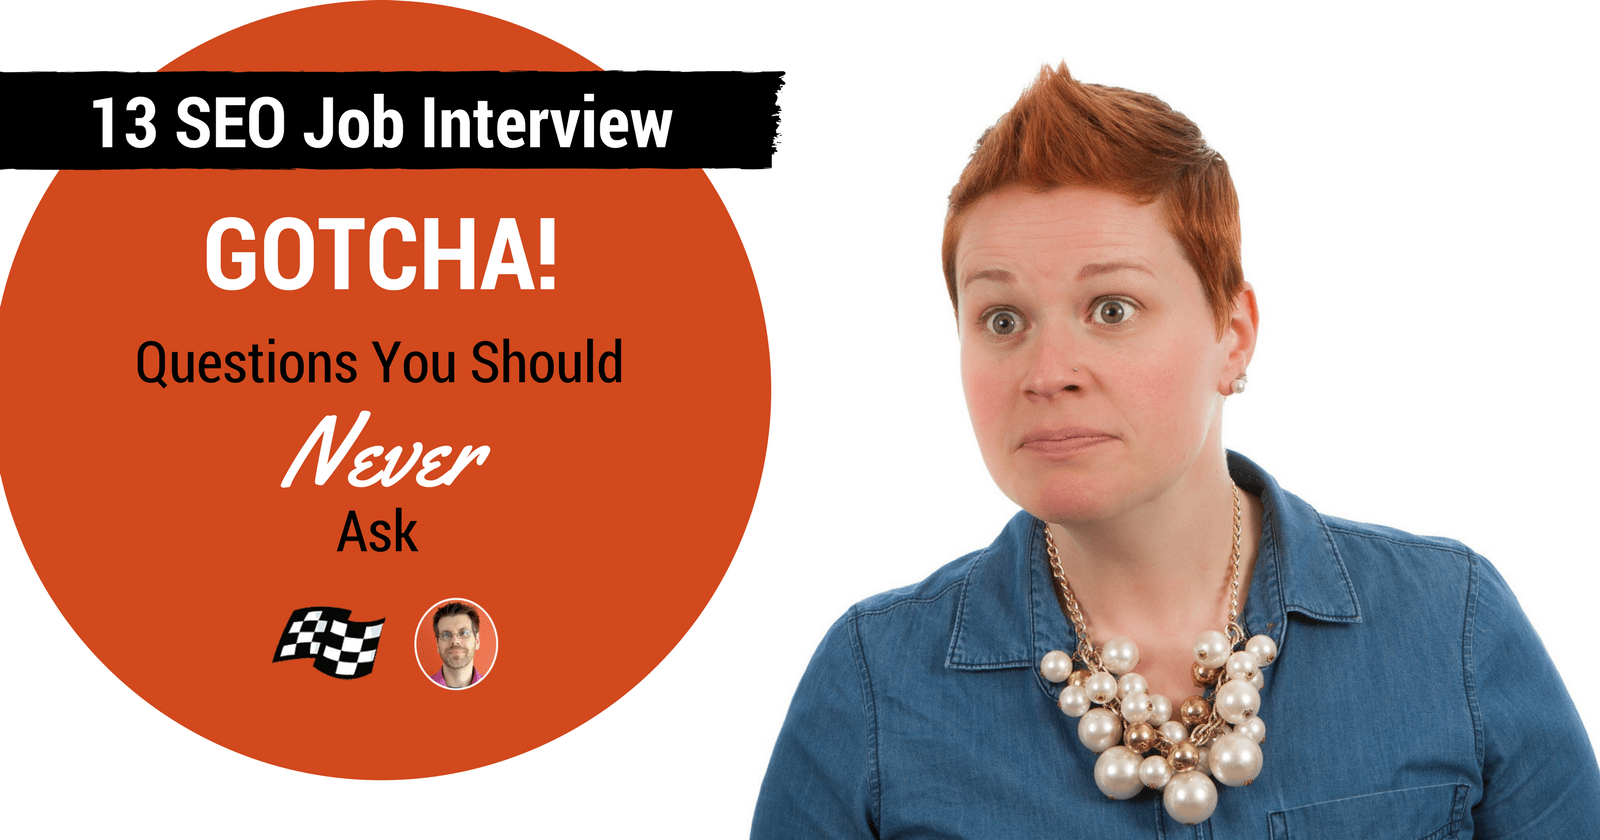 13 SEO Job Interview GOTCHA! Questions You Should Never Ask by @stoneyd